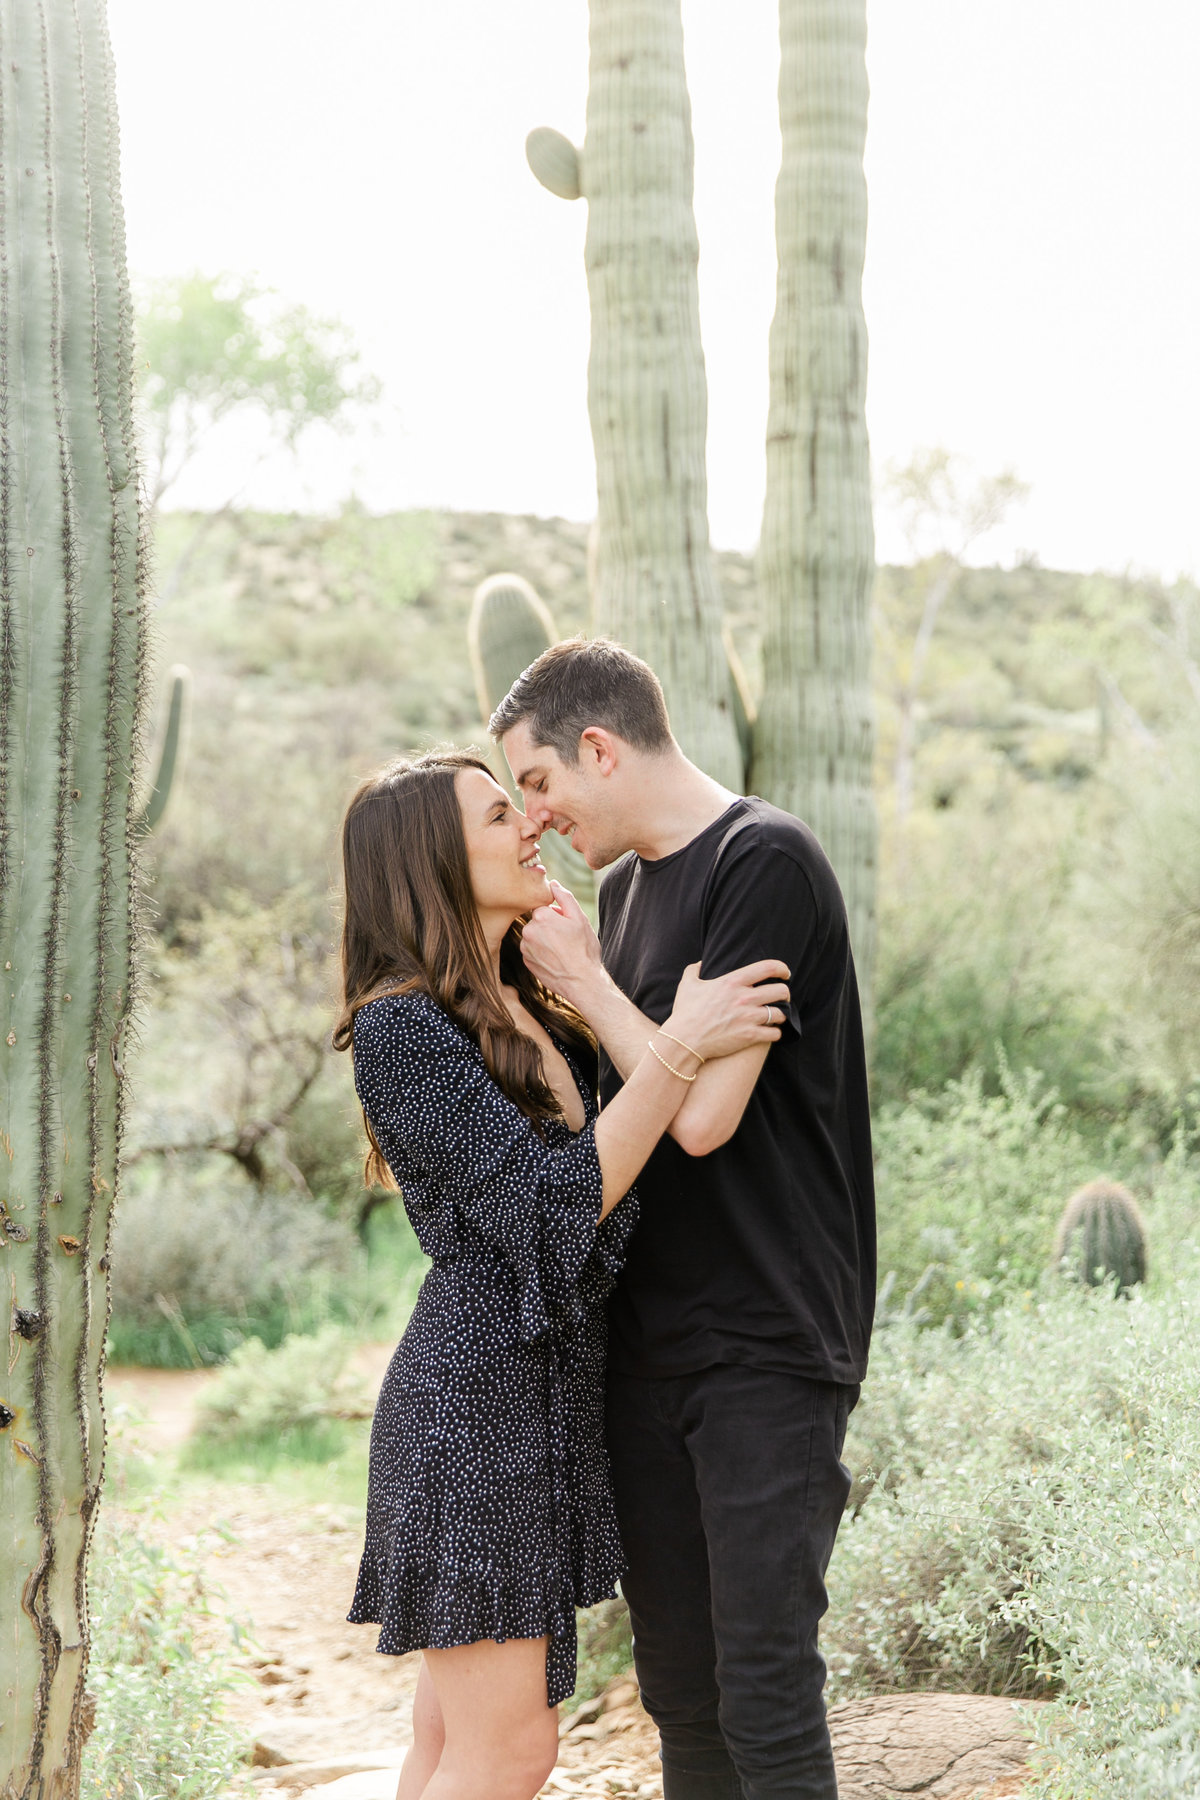 Karlie Colleen Photography - Emily & Ryan Engagement Session - El Chorro Wedding - Revel Wedding Co-122